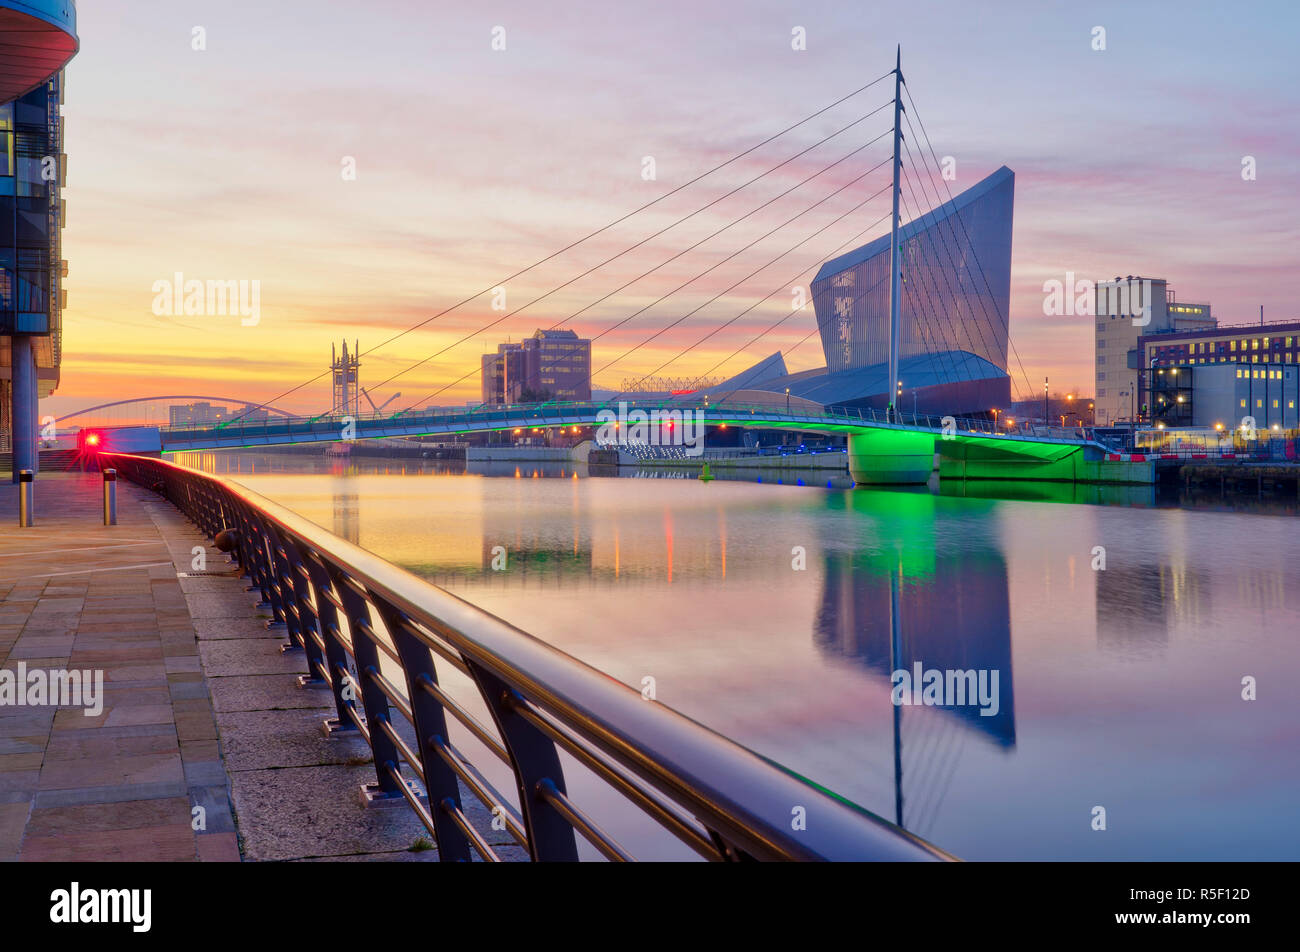 UK, England, Greater Manchester, Salford, Salford Quays, Imperial War Museum North and MediaCityUK Footbridge Stock Photo